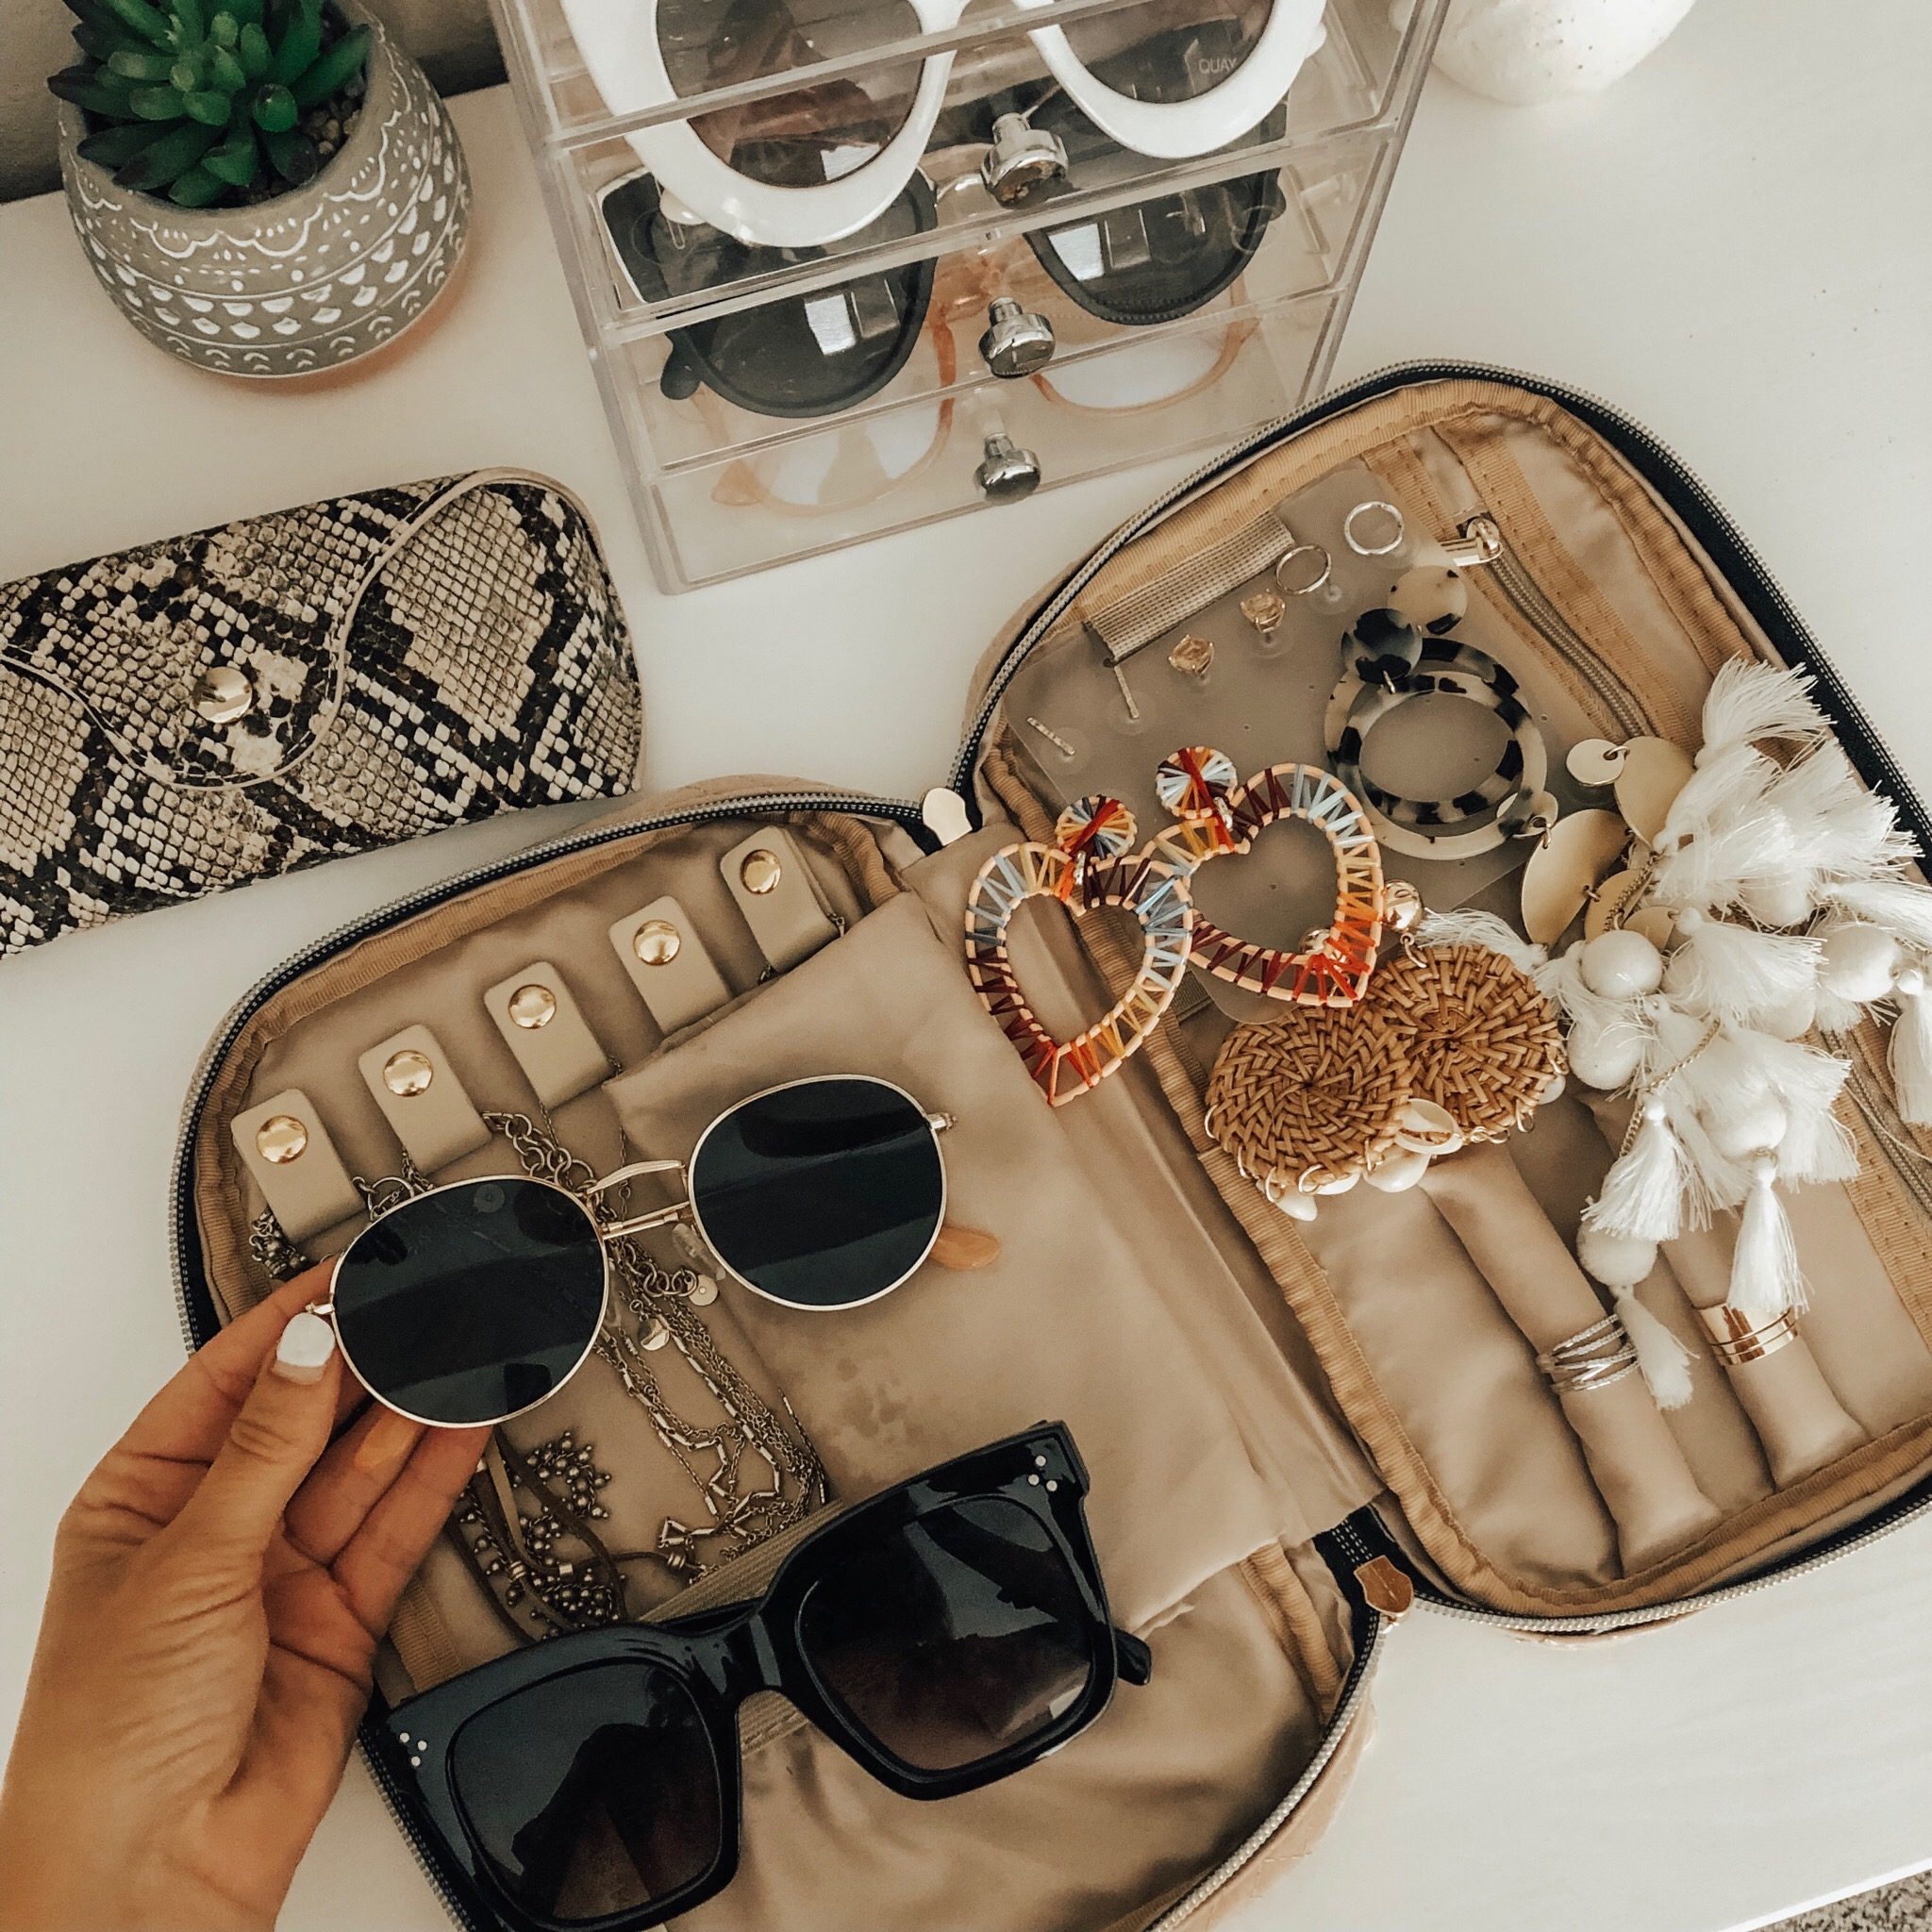 TRAVEL ESSENTIALS- Jaclyn De Leon Style+ I love traveling and want to make things as easy as possible so I'm sharing my must-have travel pieces for every trip.